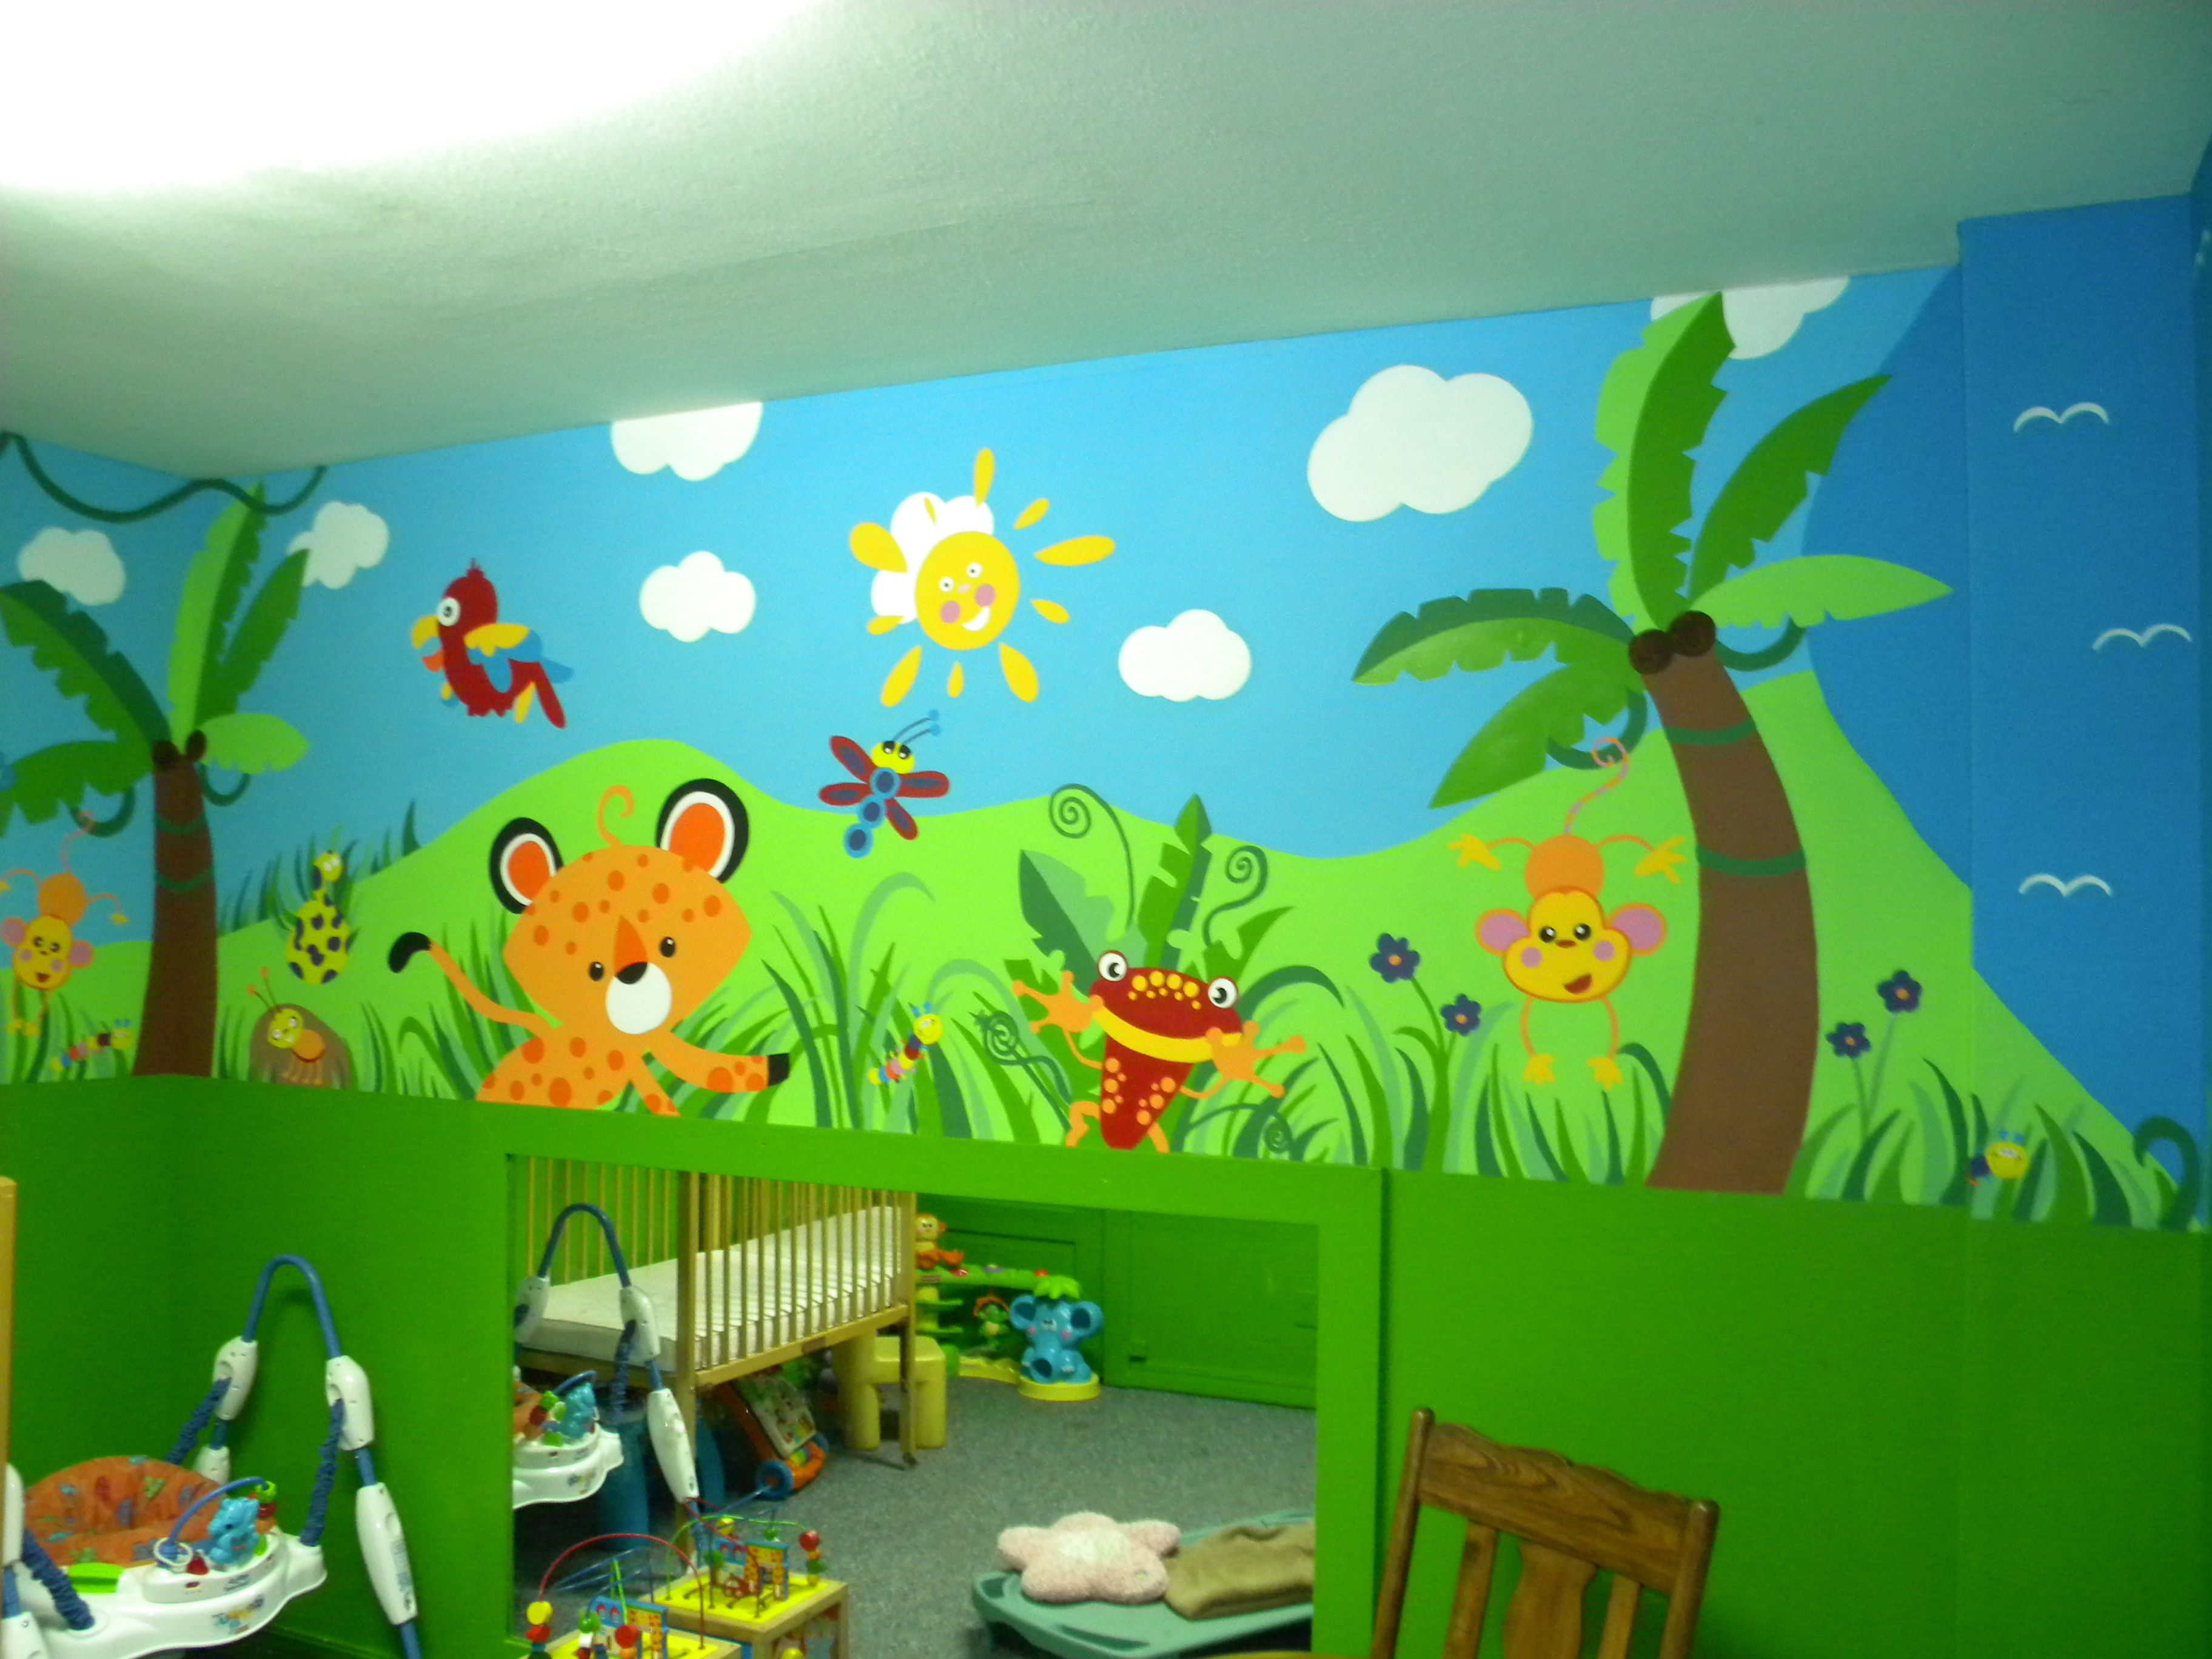 Daycare jungle mural complete wall 4 mural ideas for Children room mural